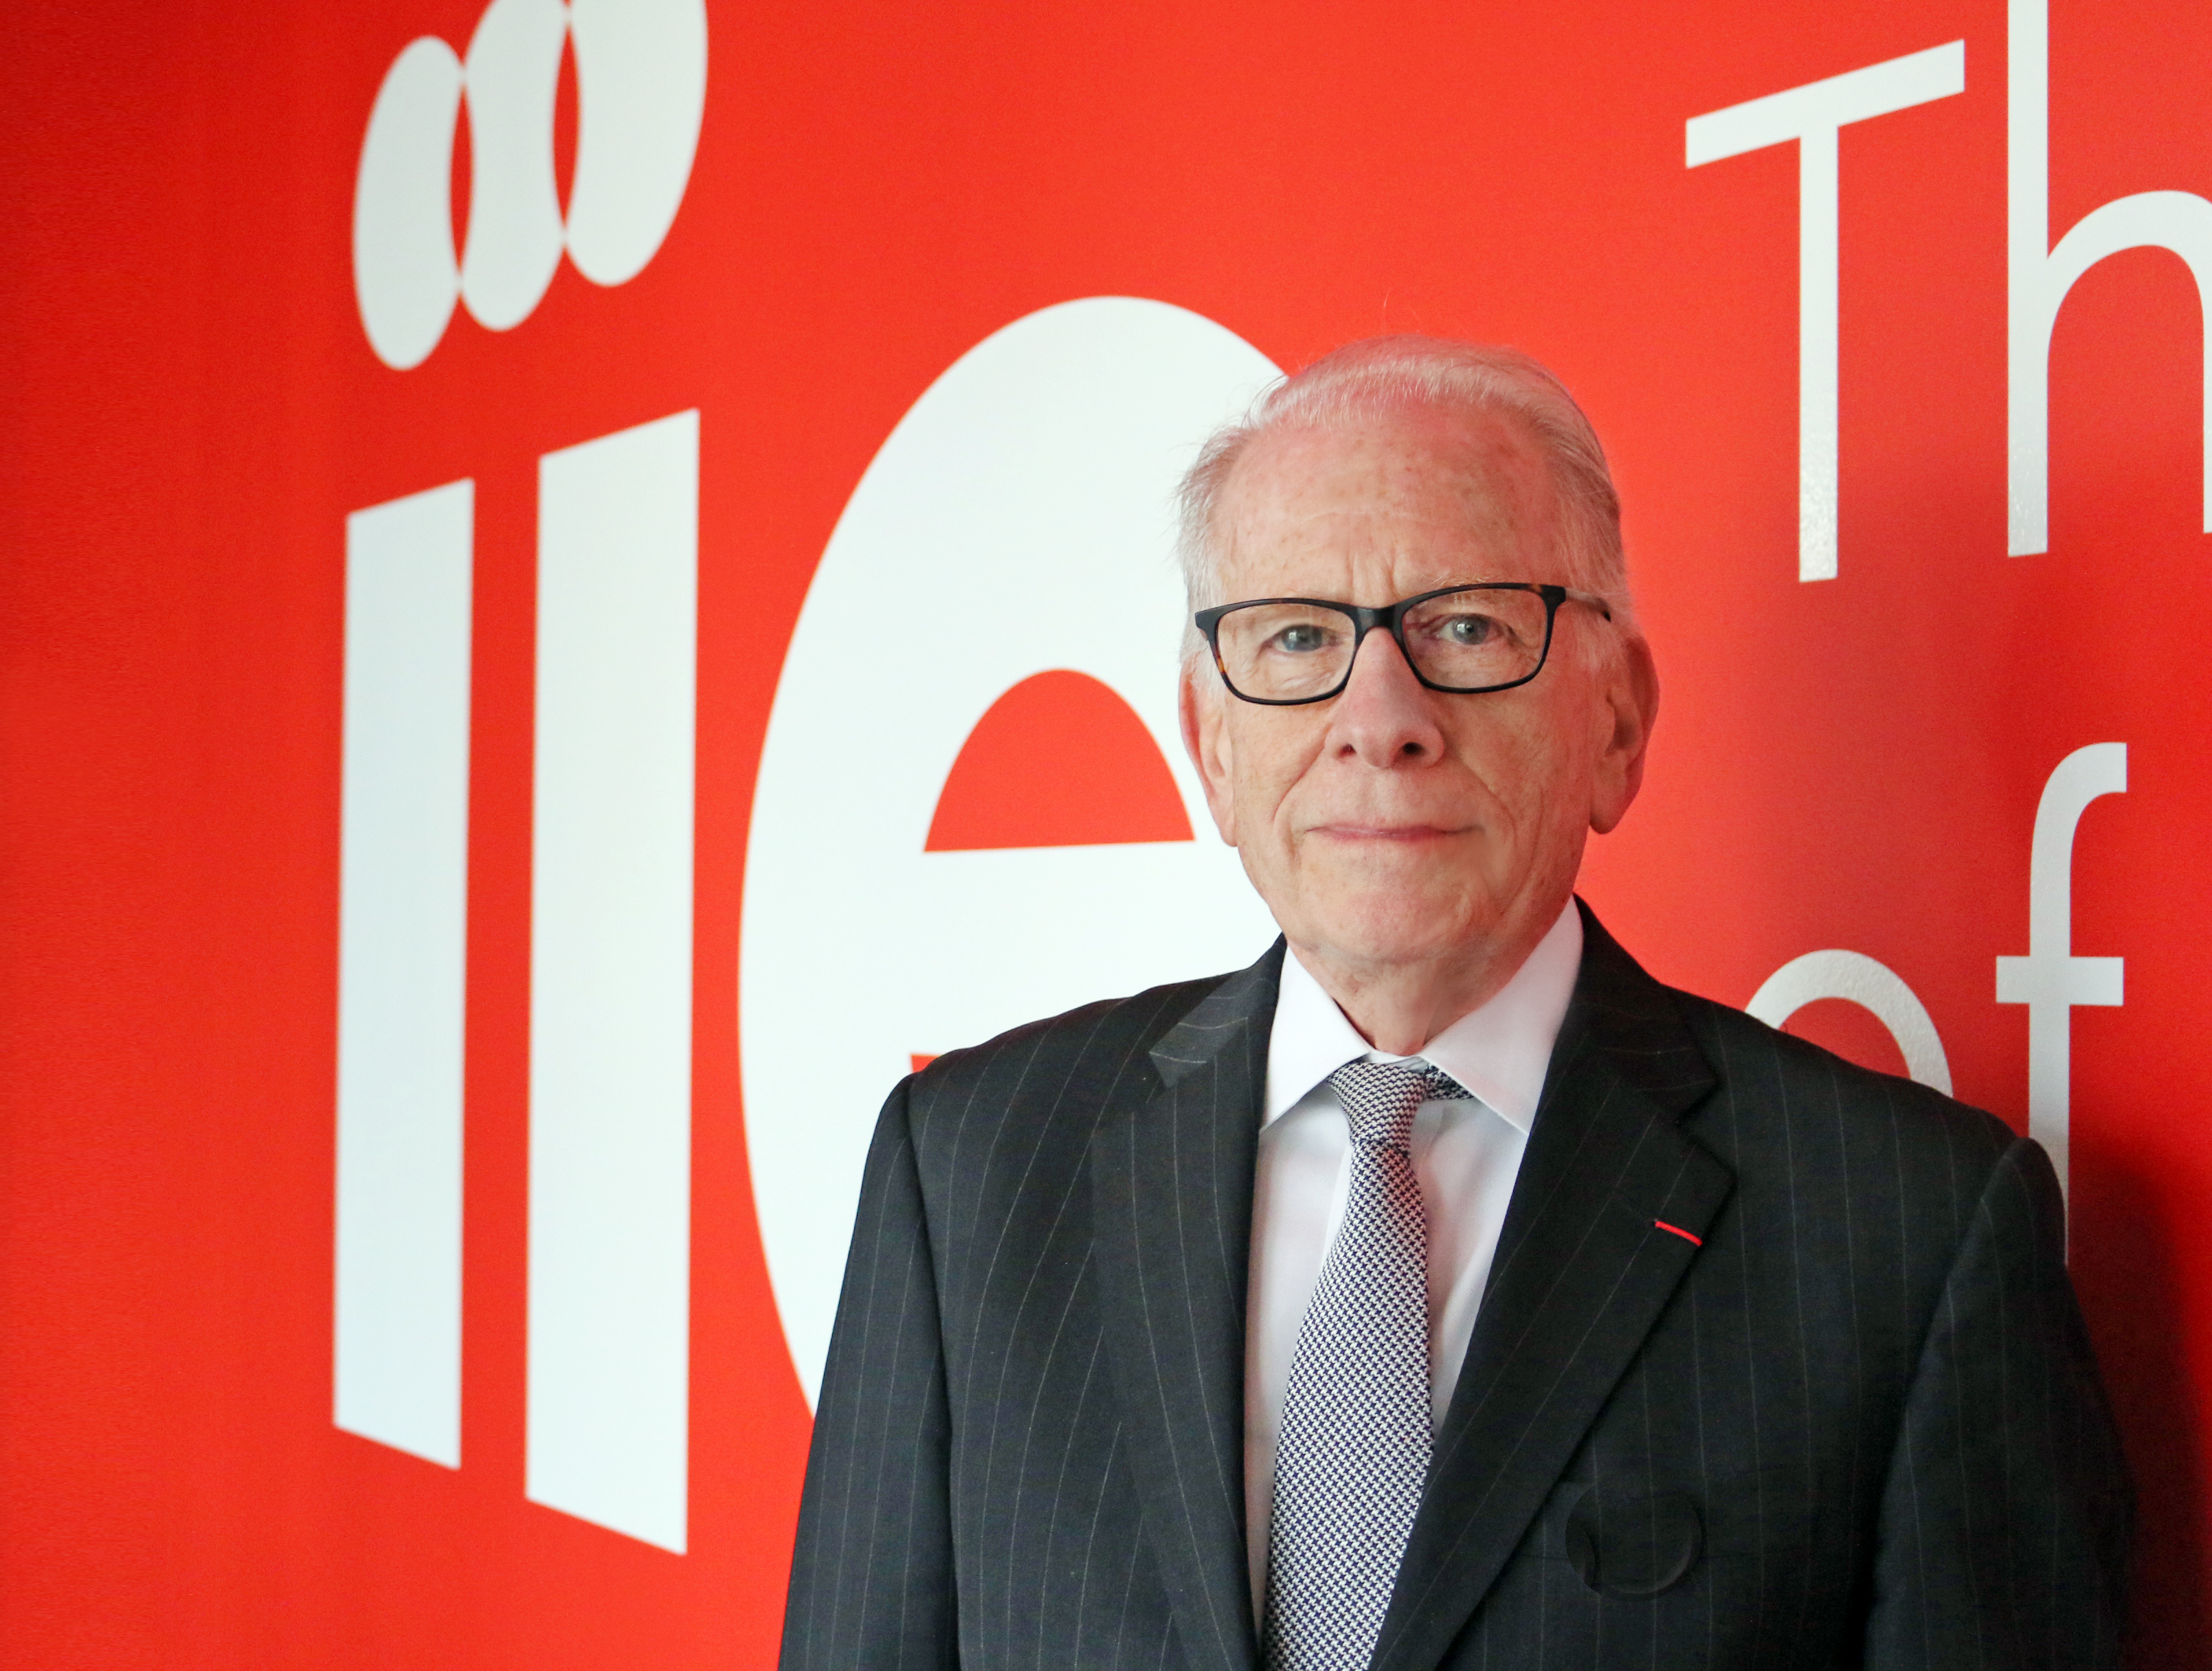 Dr. Allan Goodman, President and CEO, standing in front of an IIE logo wall.